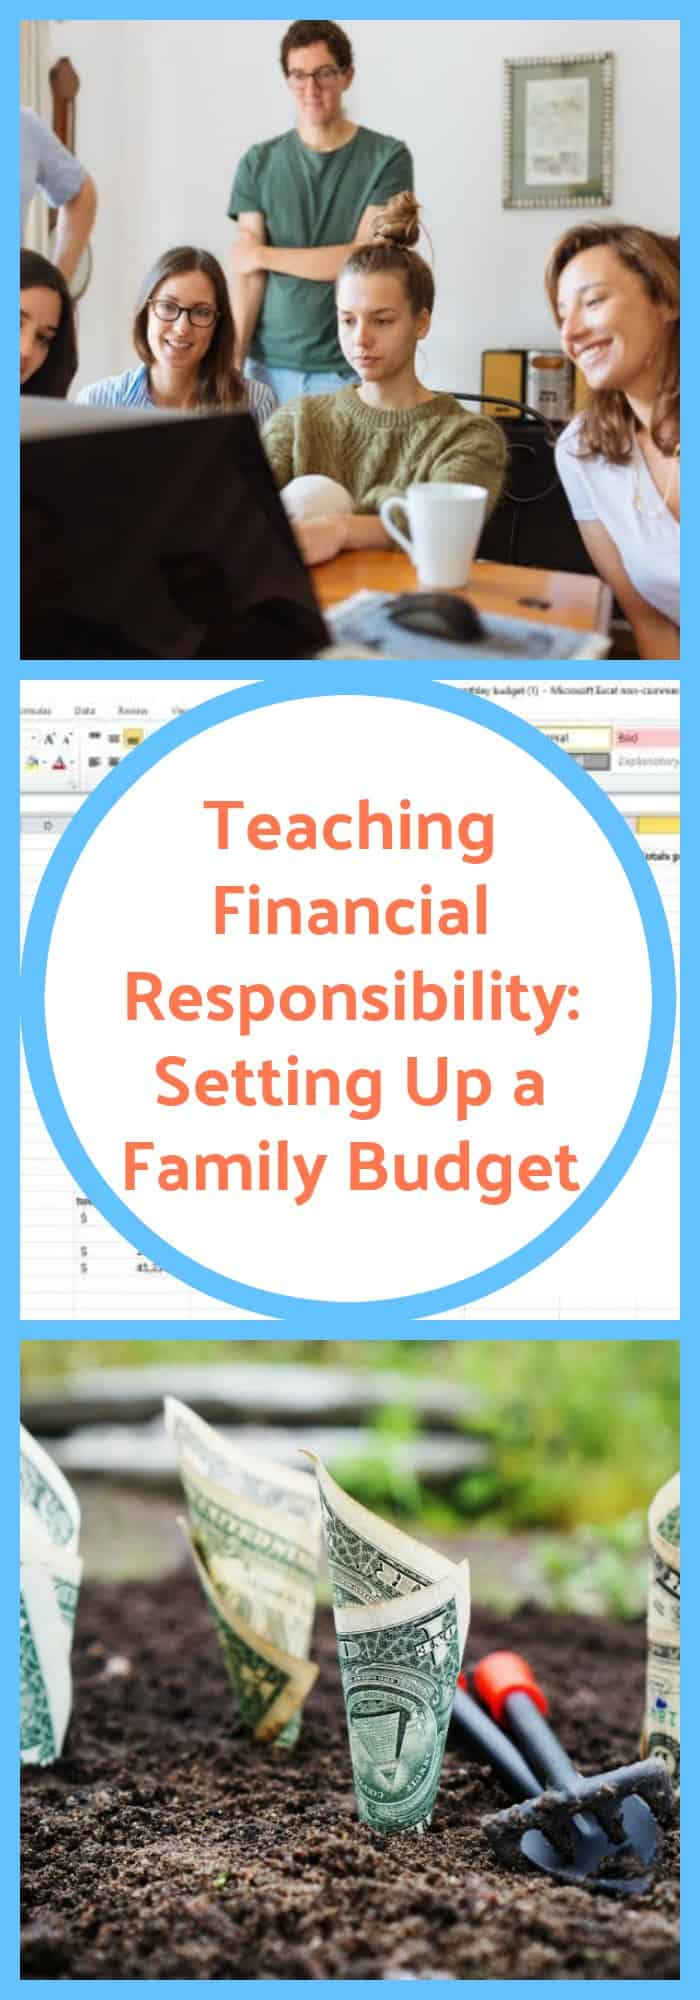 Teaching Financial Responsibility: Setting Up a Family Budget